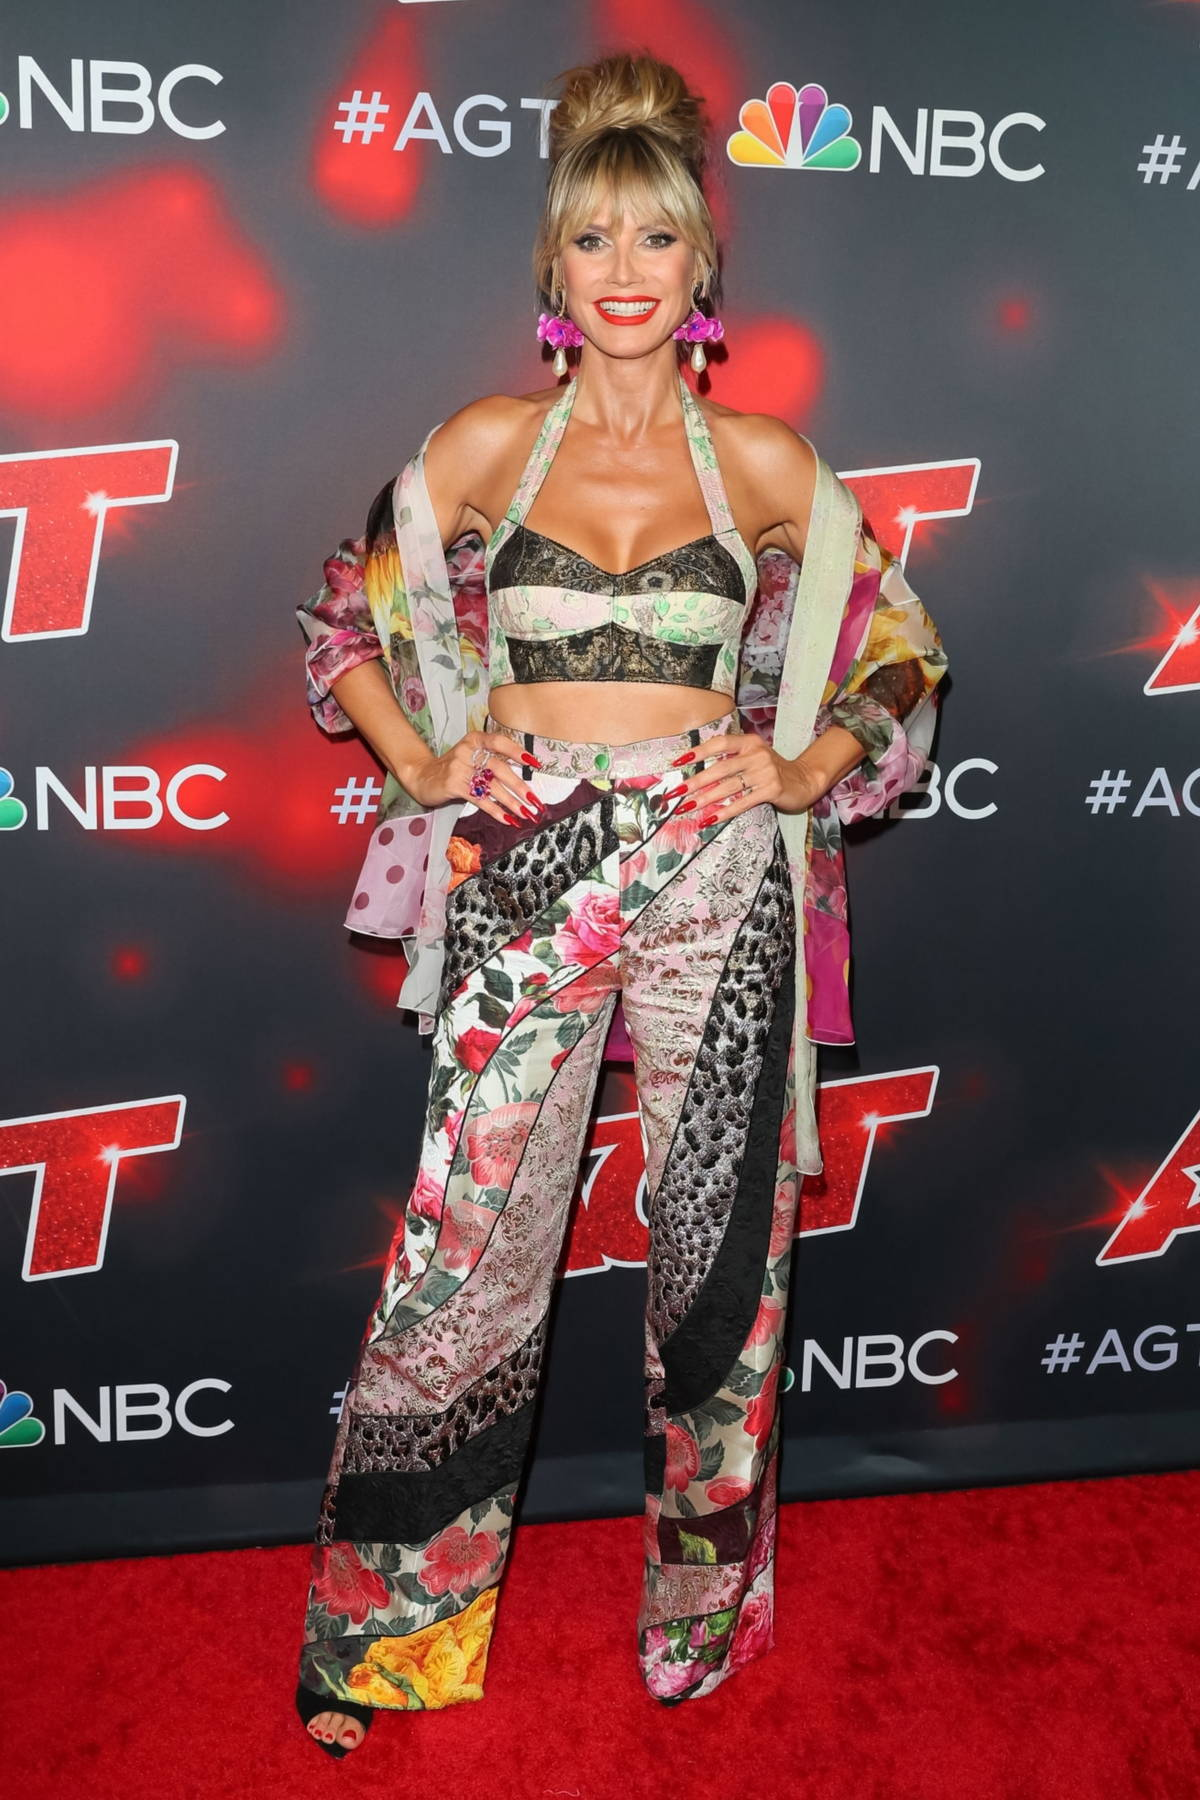 Heidi Klum arrives at 'America's Got Talent', Season 16 live show at Dolby Theatre in Hollywood, California